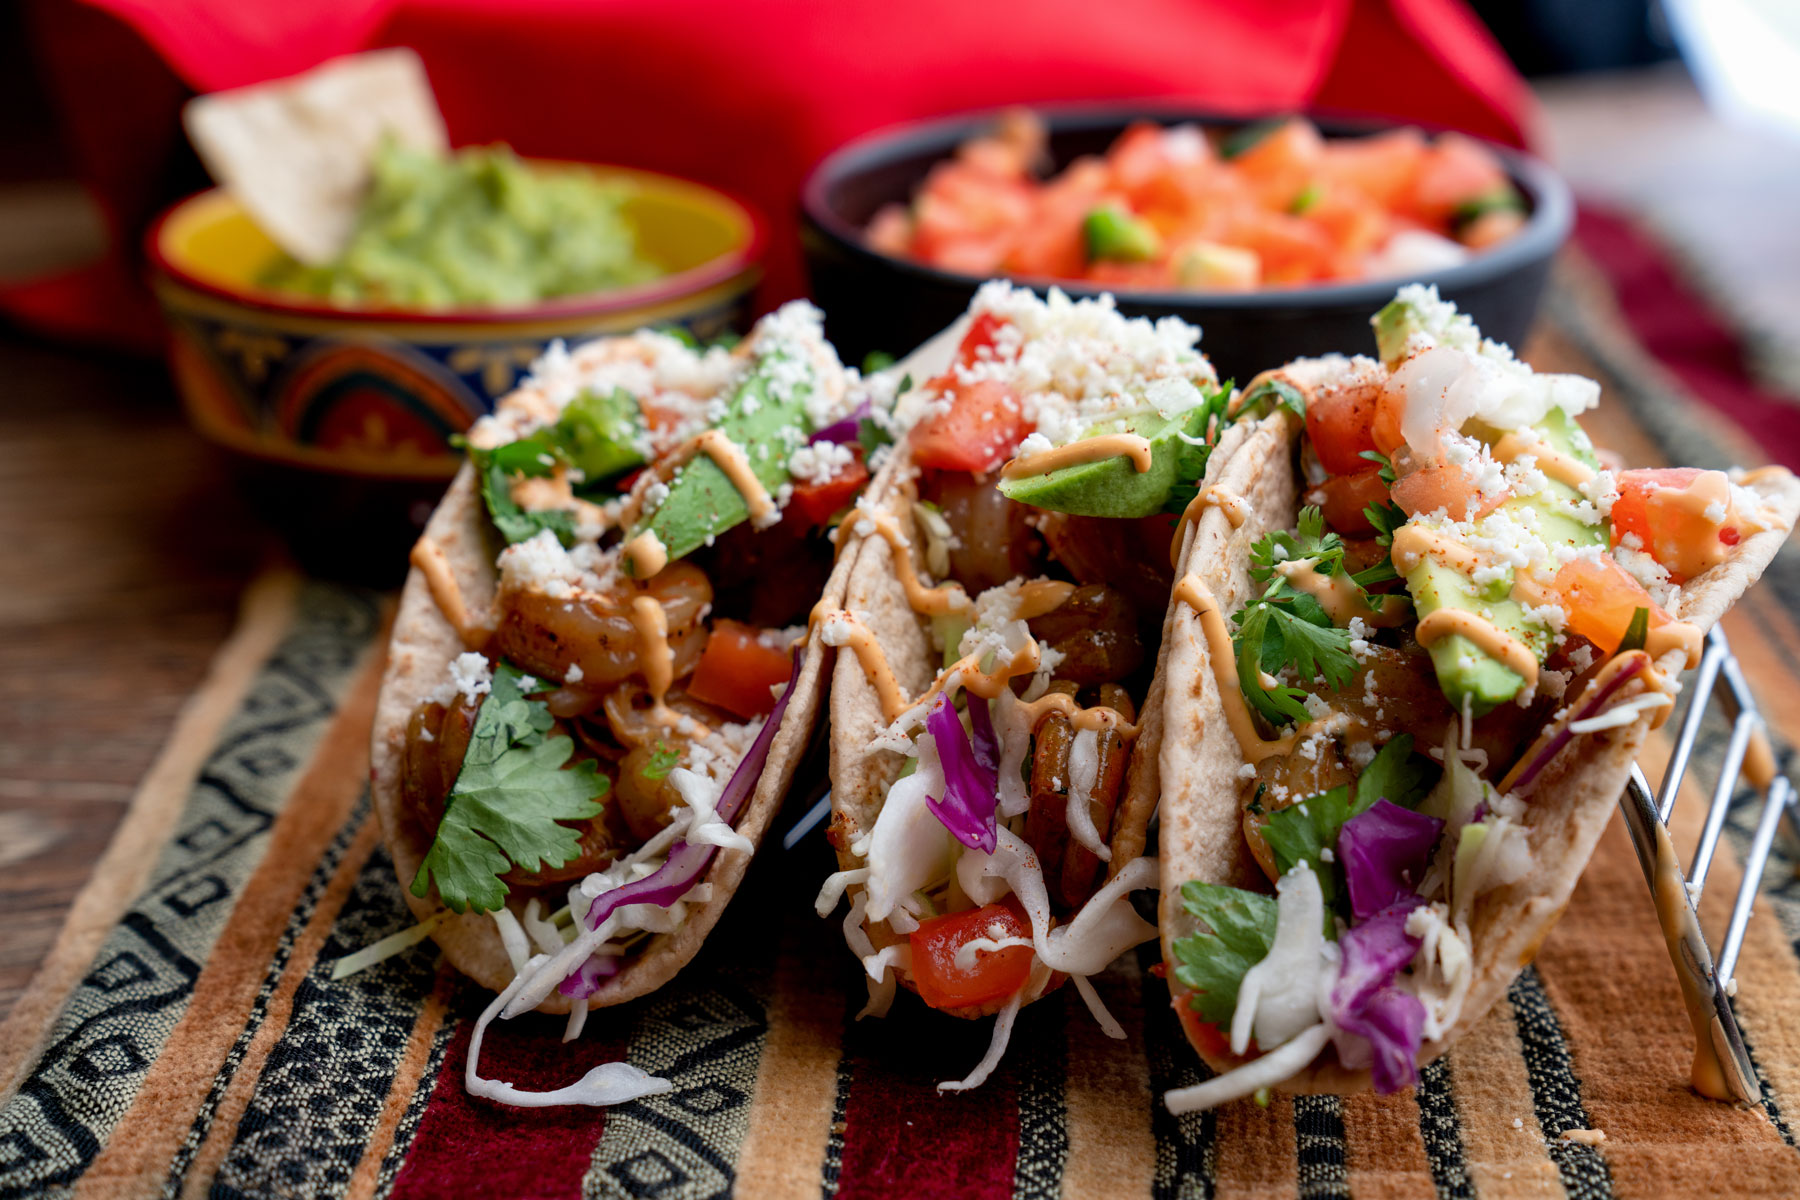 Where to Find the Best Mexican Food in Phoenix